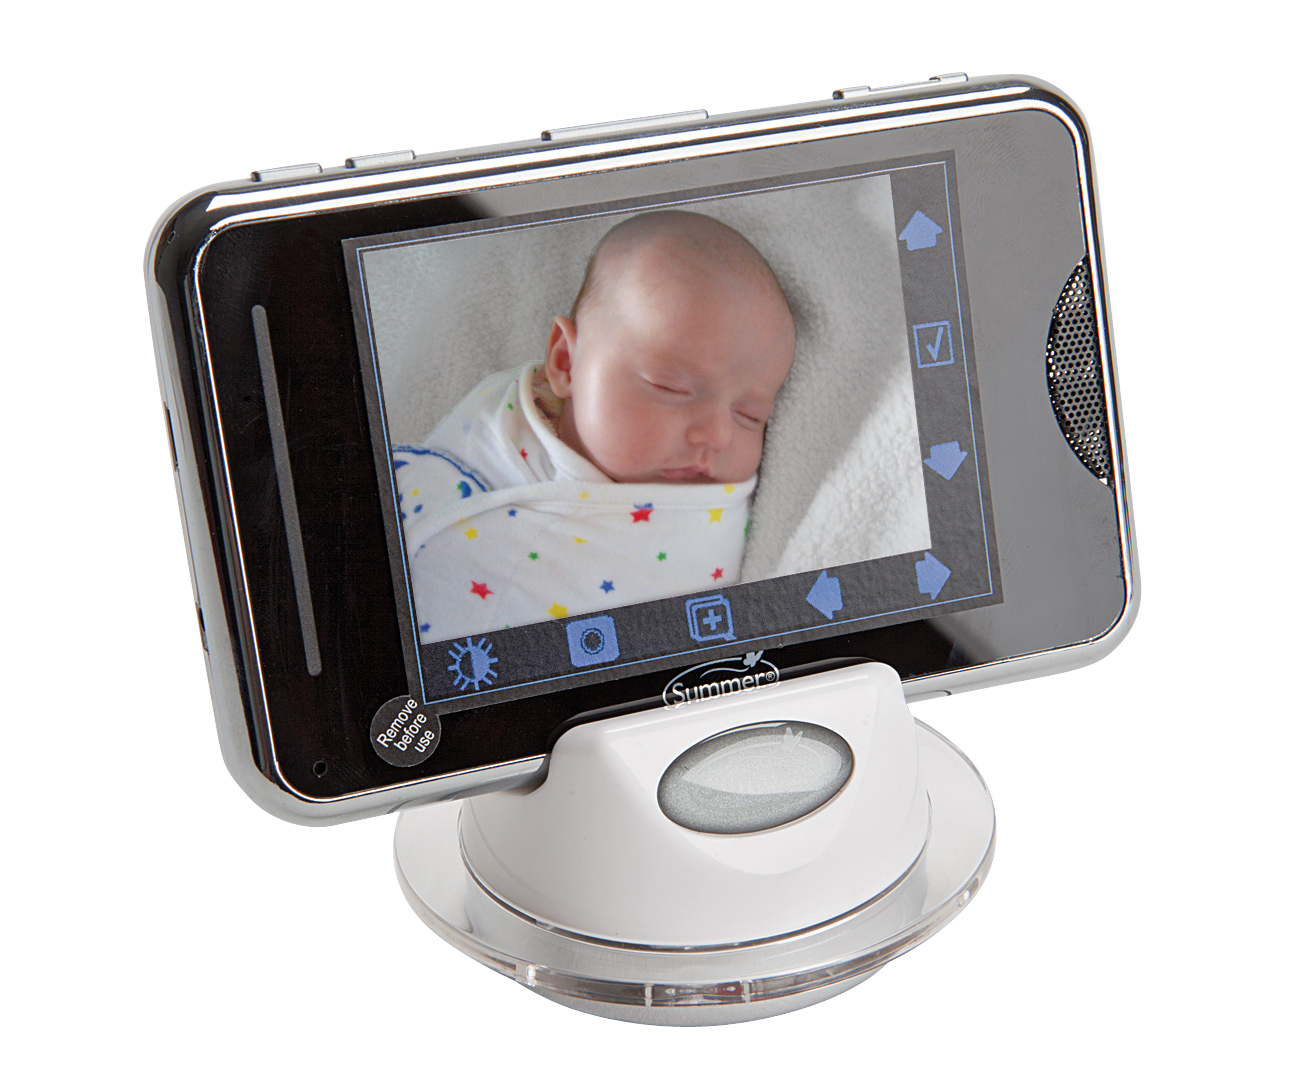 Baby Gadgets for the Nursery